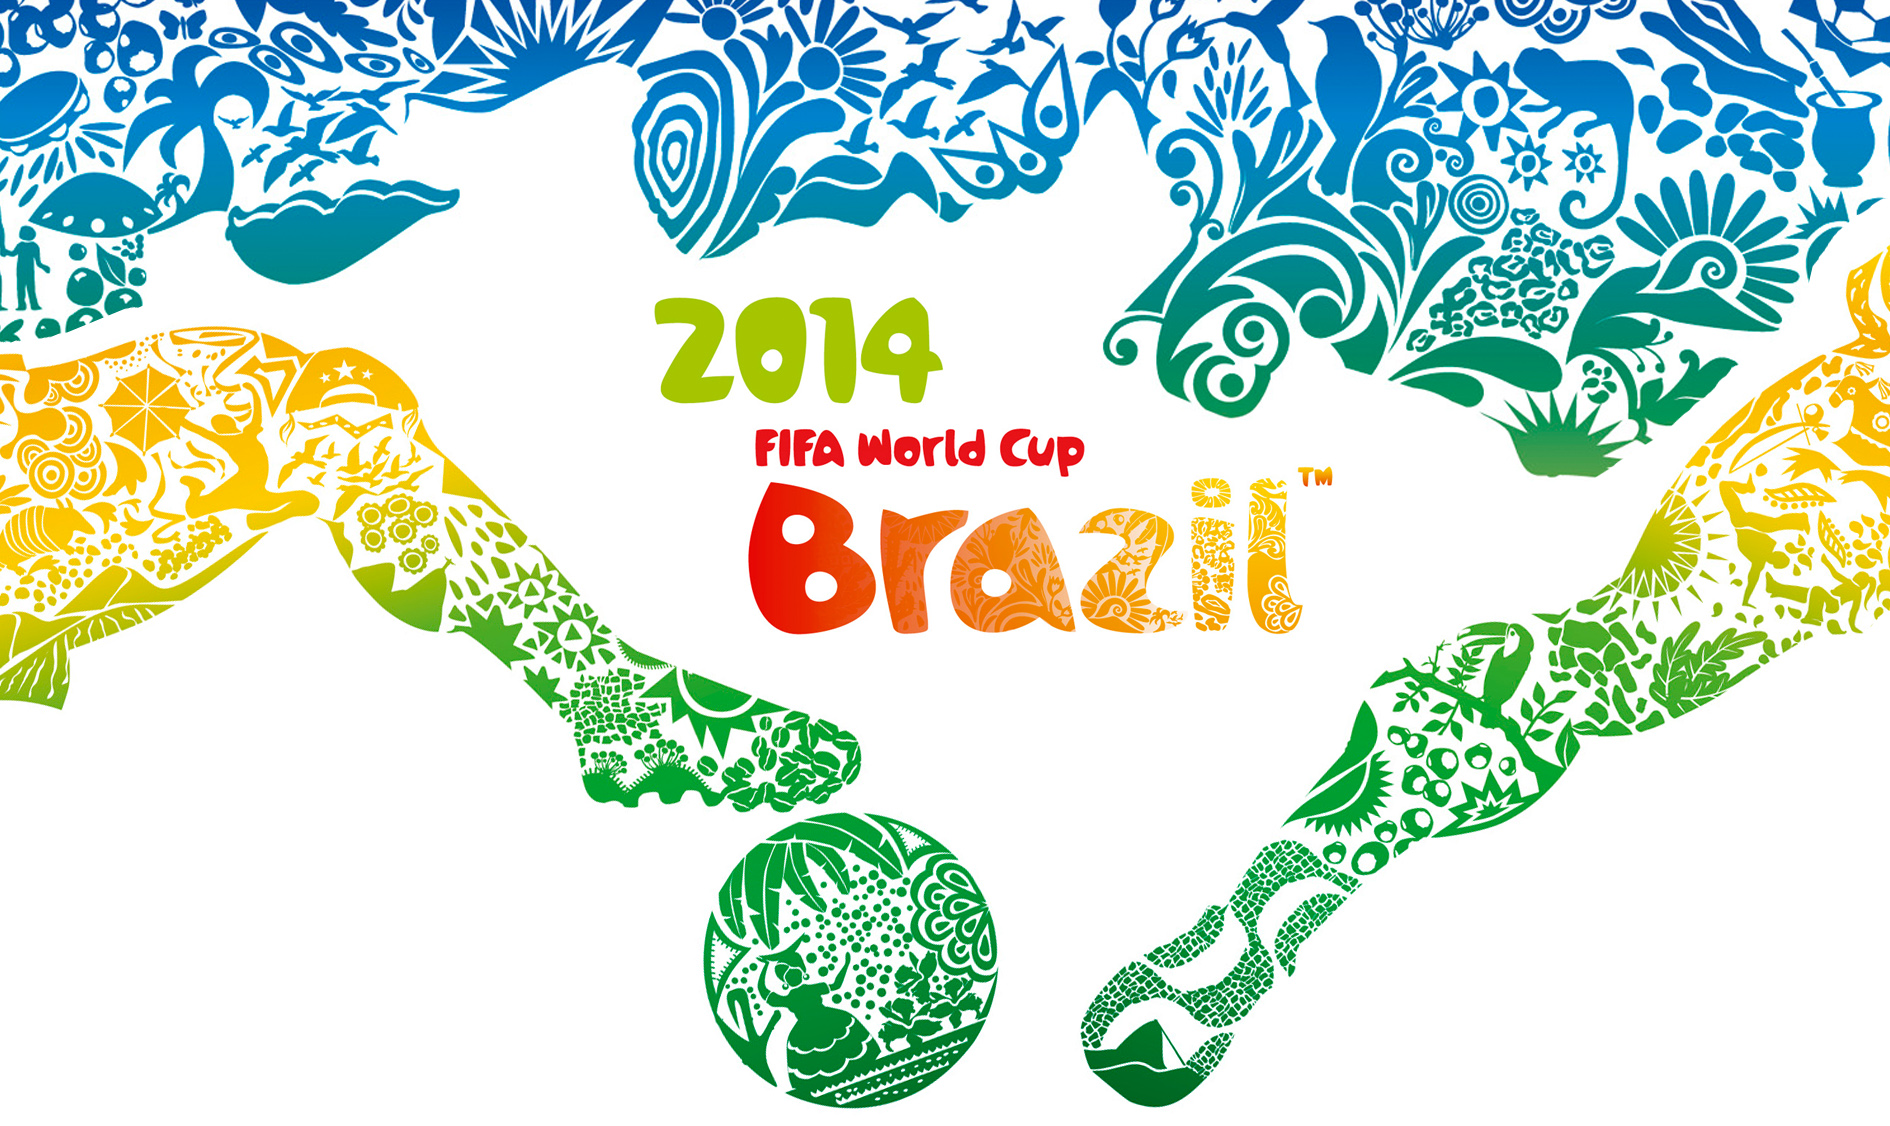 The Best of FIFA World Cup 2014 as played on Social Media